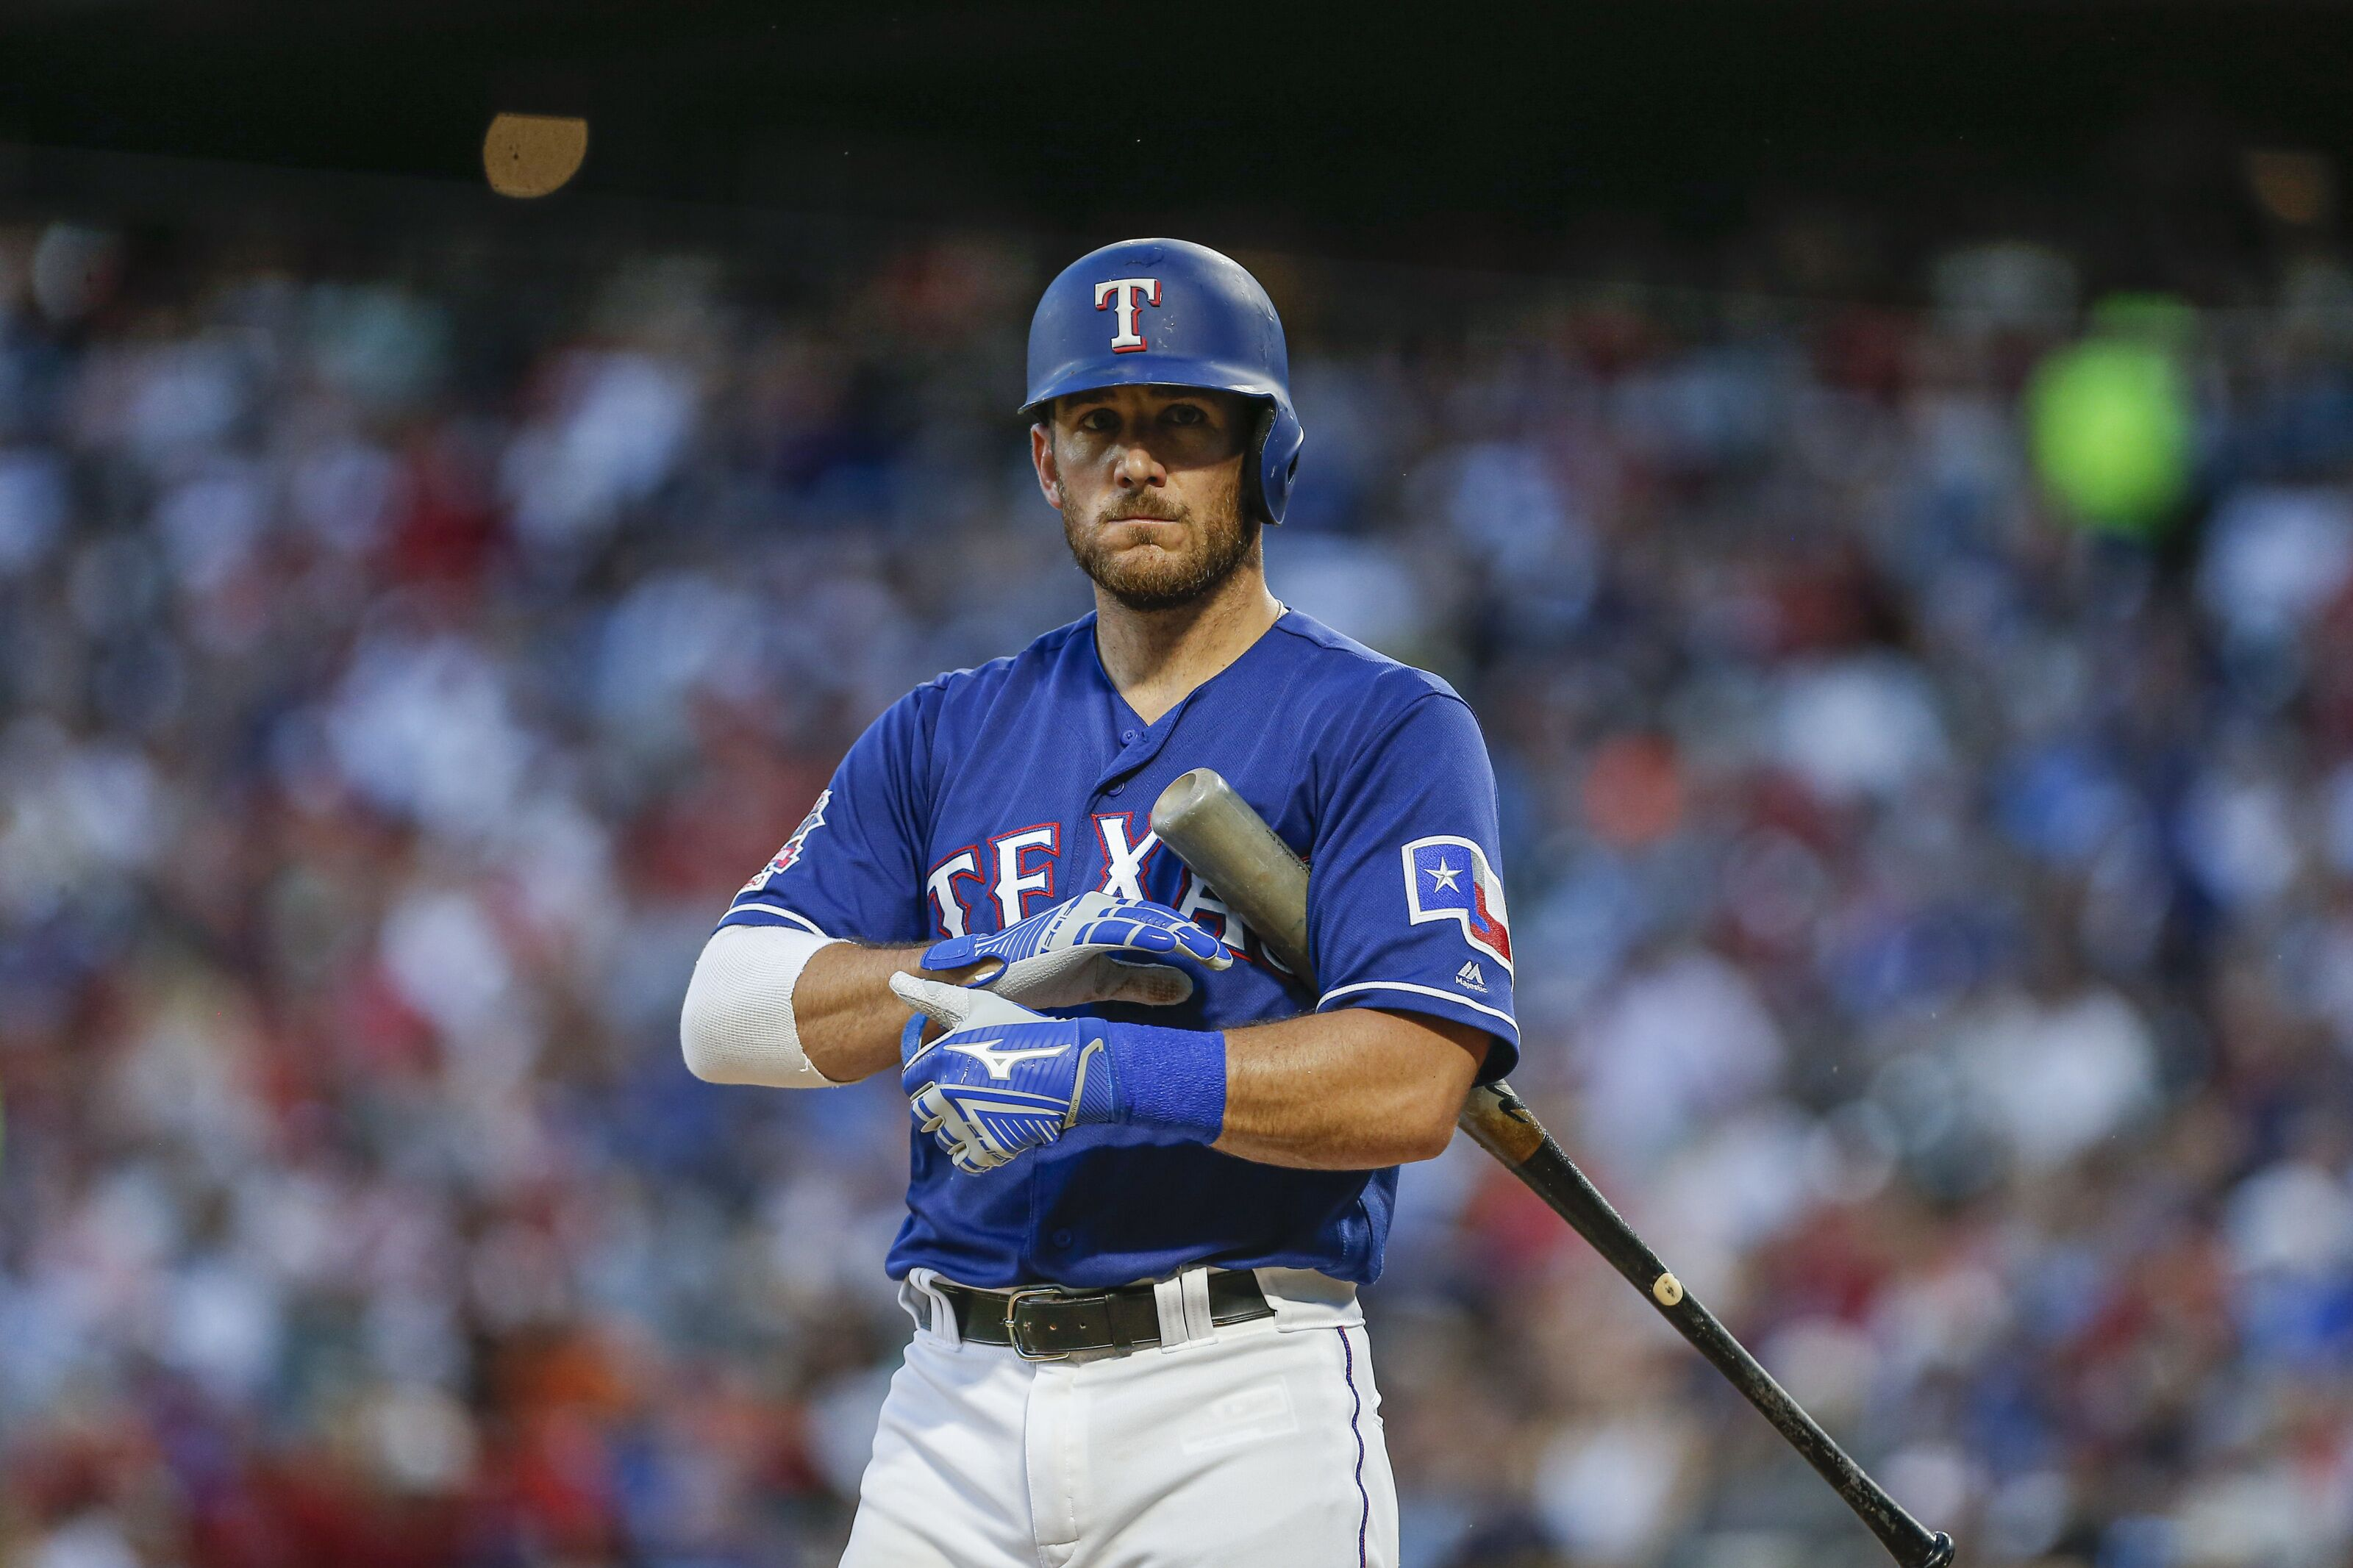 Texas Rangers: Jon Daniels Lays Out Plans for Jeff Mathis in 2020